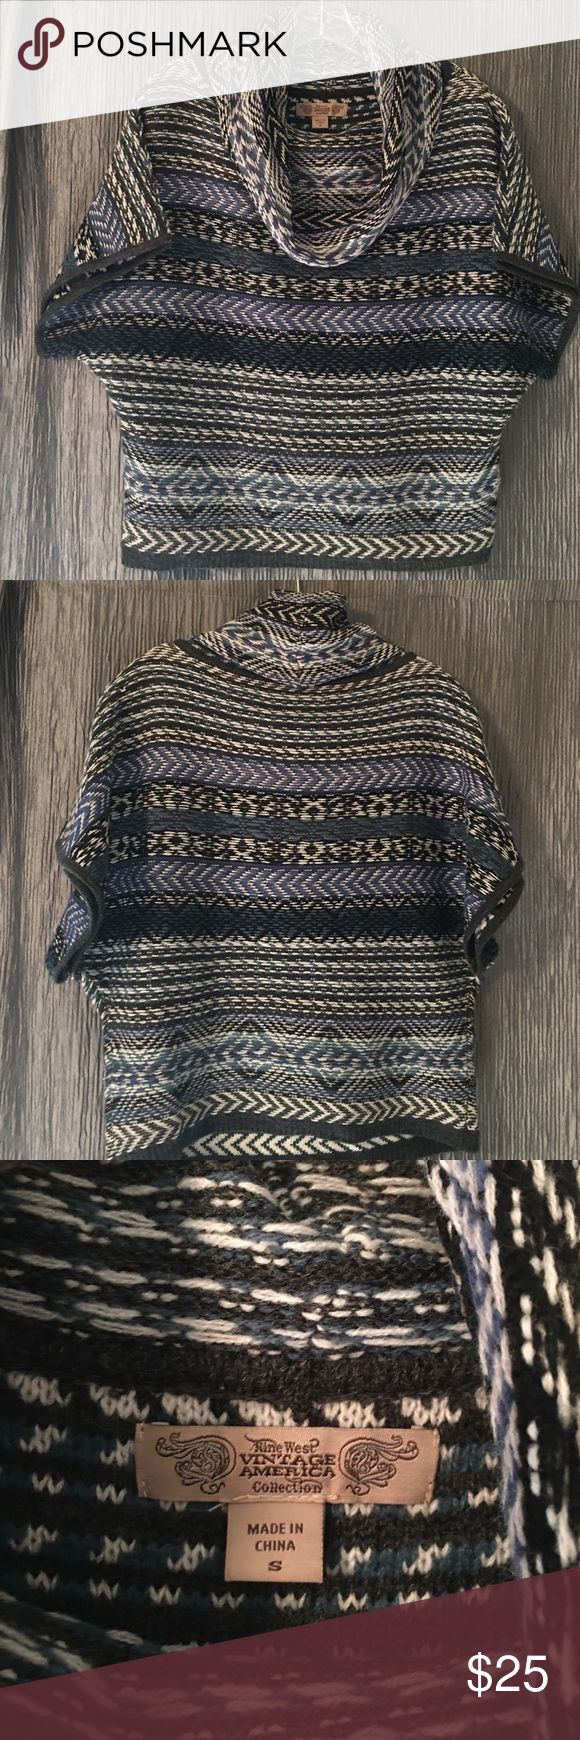 Nine West Vintage America Collection sweater Great Aztec sweater. You can dress up for work or dress down with a great pair of jeans. Has cowl neck. Nine West Sweaters Cowl & Turtlenecks